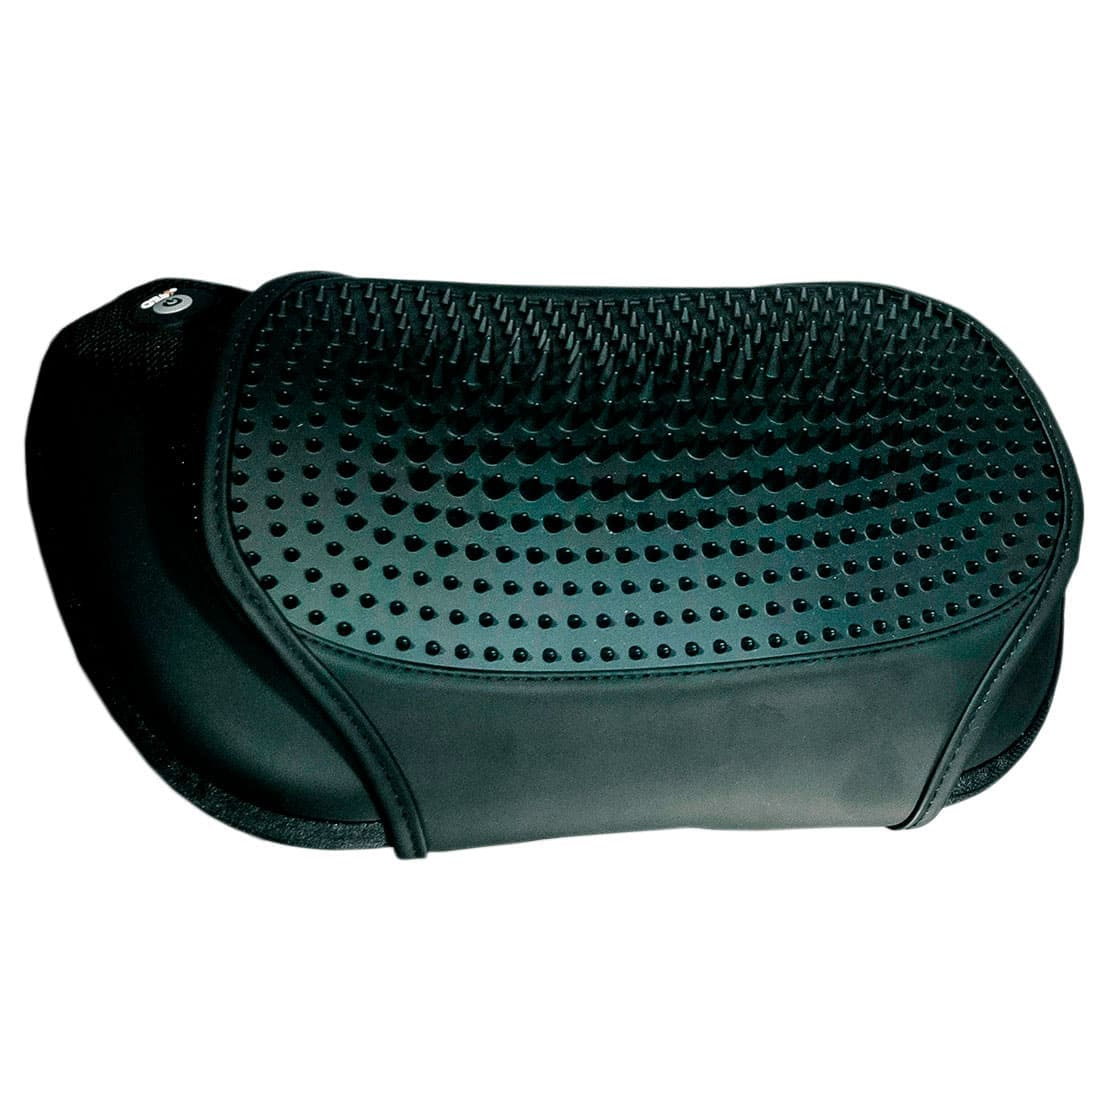 acupuncture massage pillow